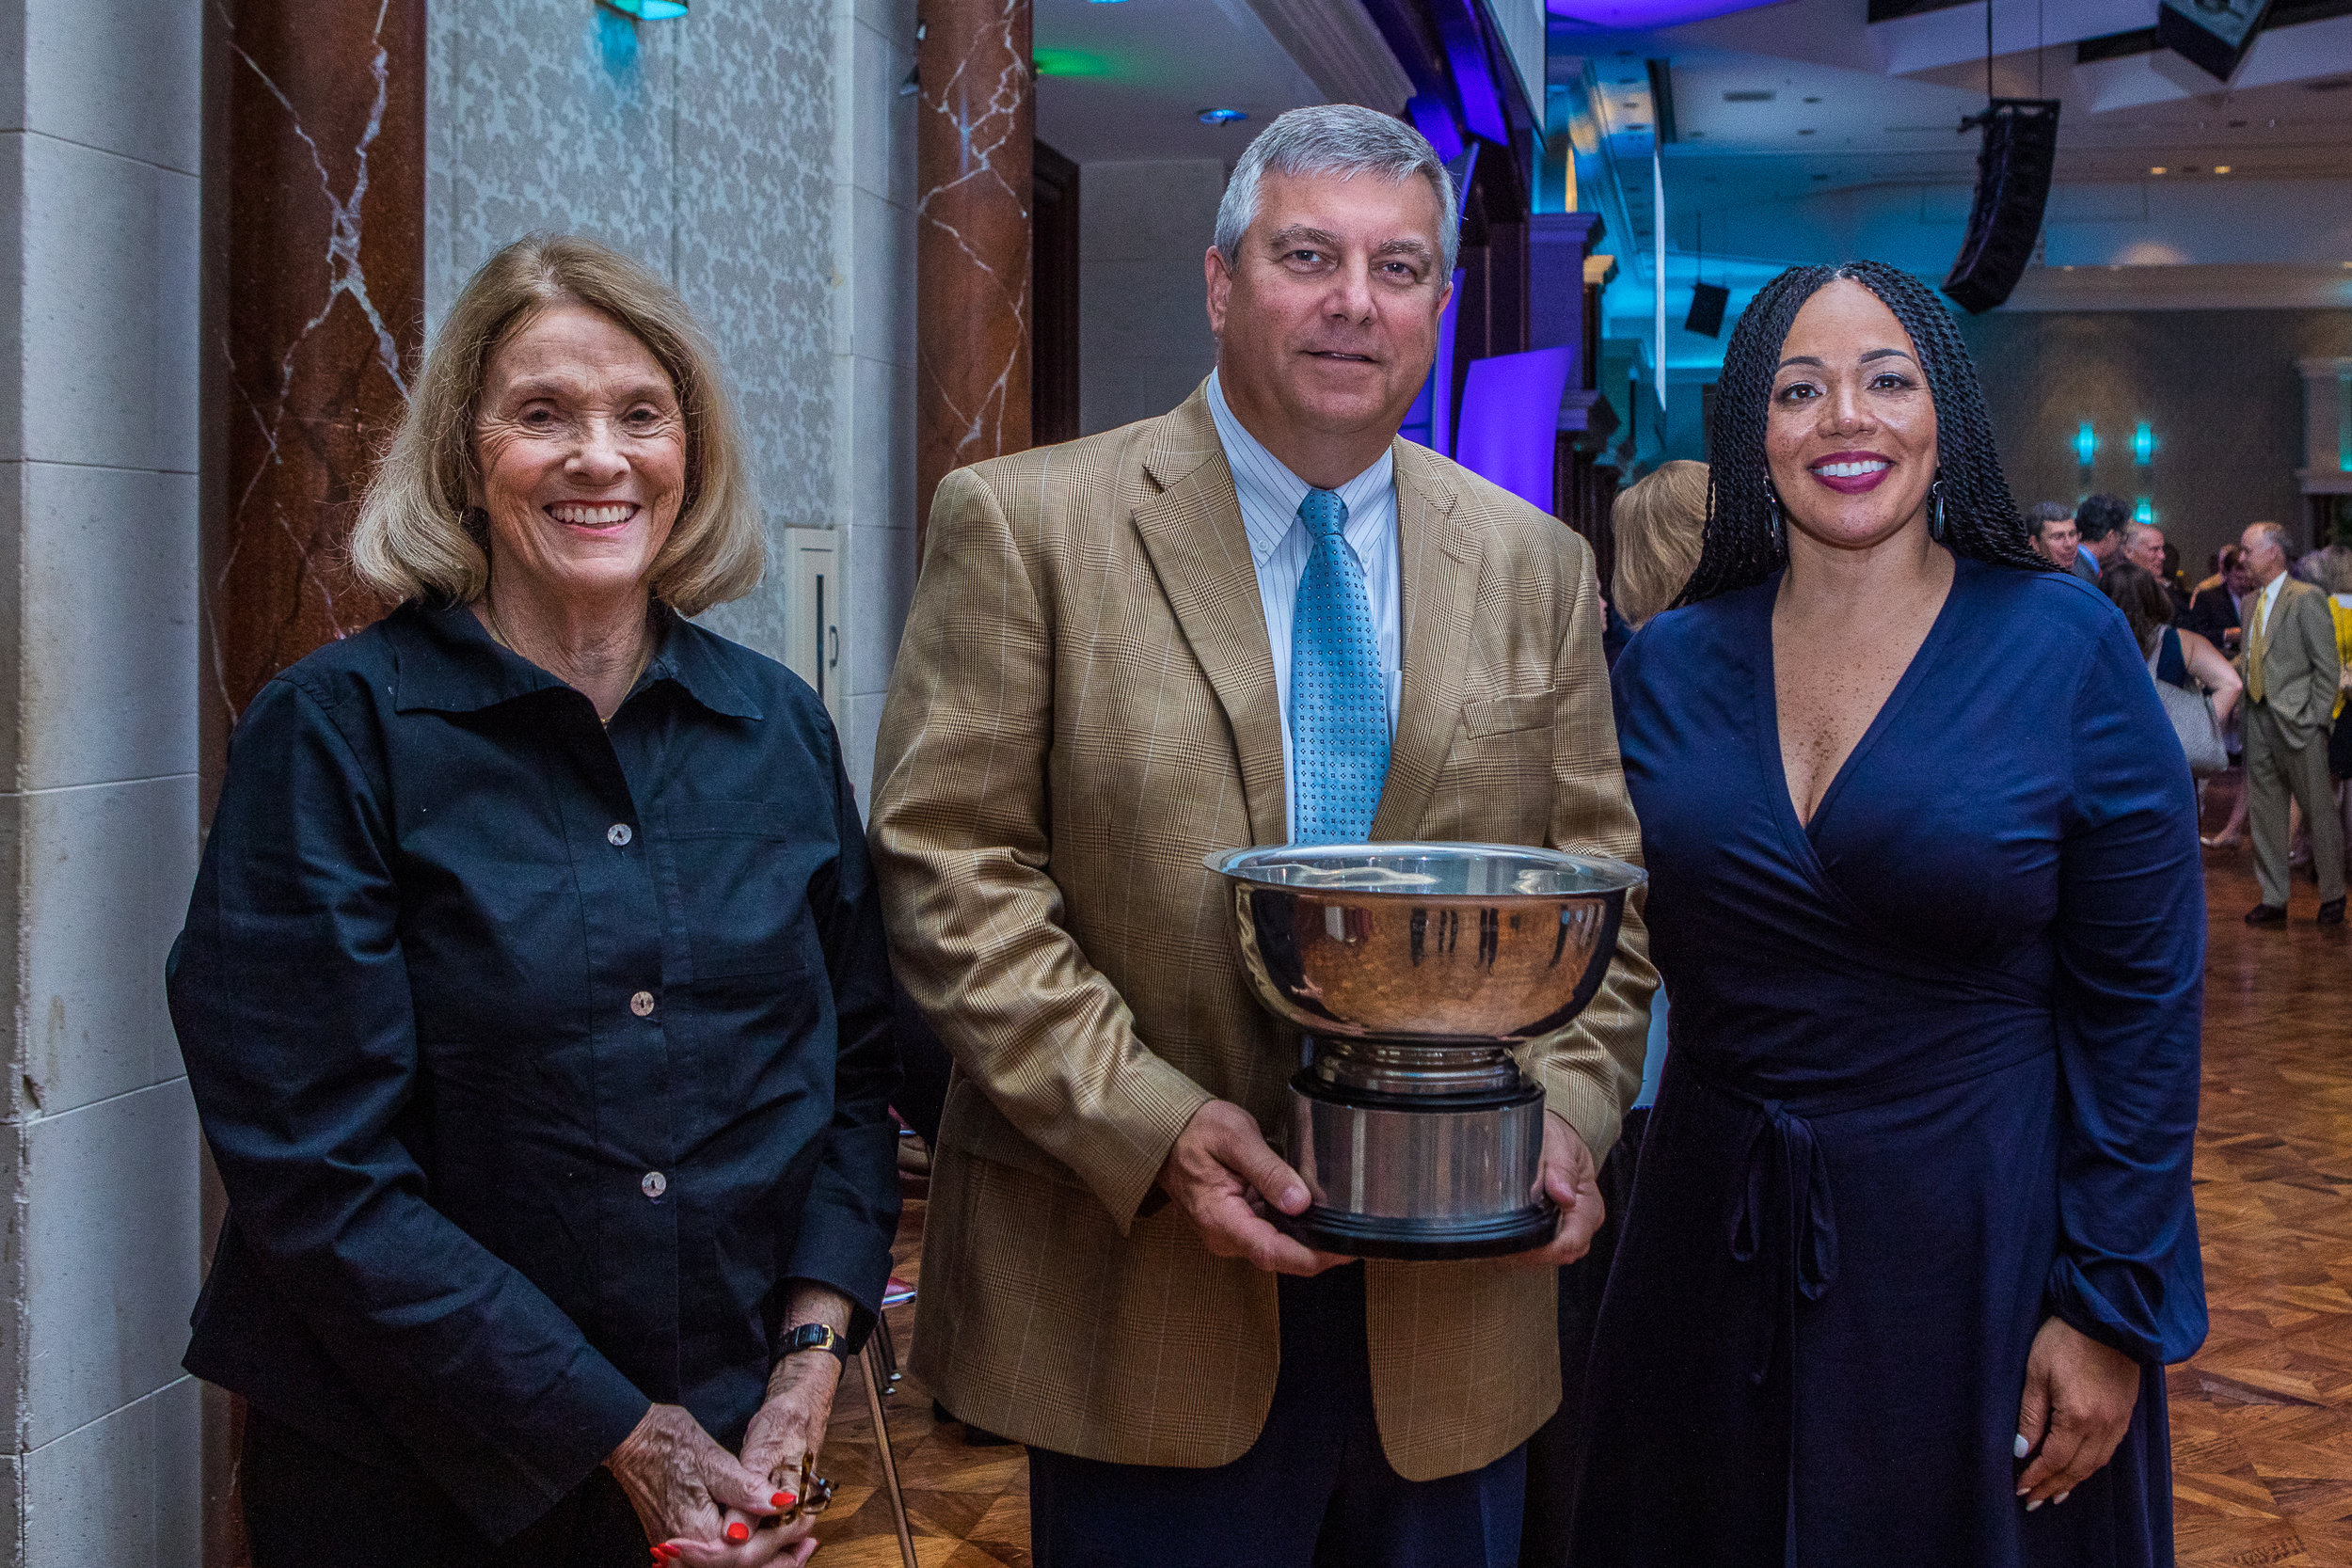 Mrs. Jackie Humphrey and Superintendent Sharon Contreras present Principal Jim Gibson the award at the Greensboro Chamber's State of Our Community Luncheon held Wednesday, August 28, 2019. Photo credit: Ivan Saul Cutler for Guilford County Schools